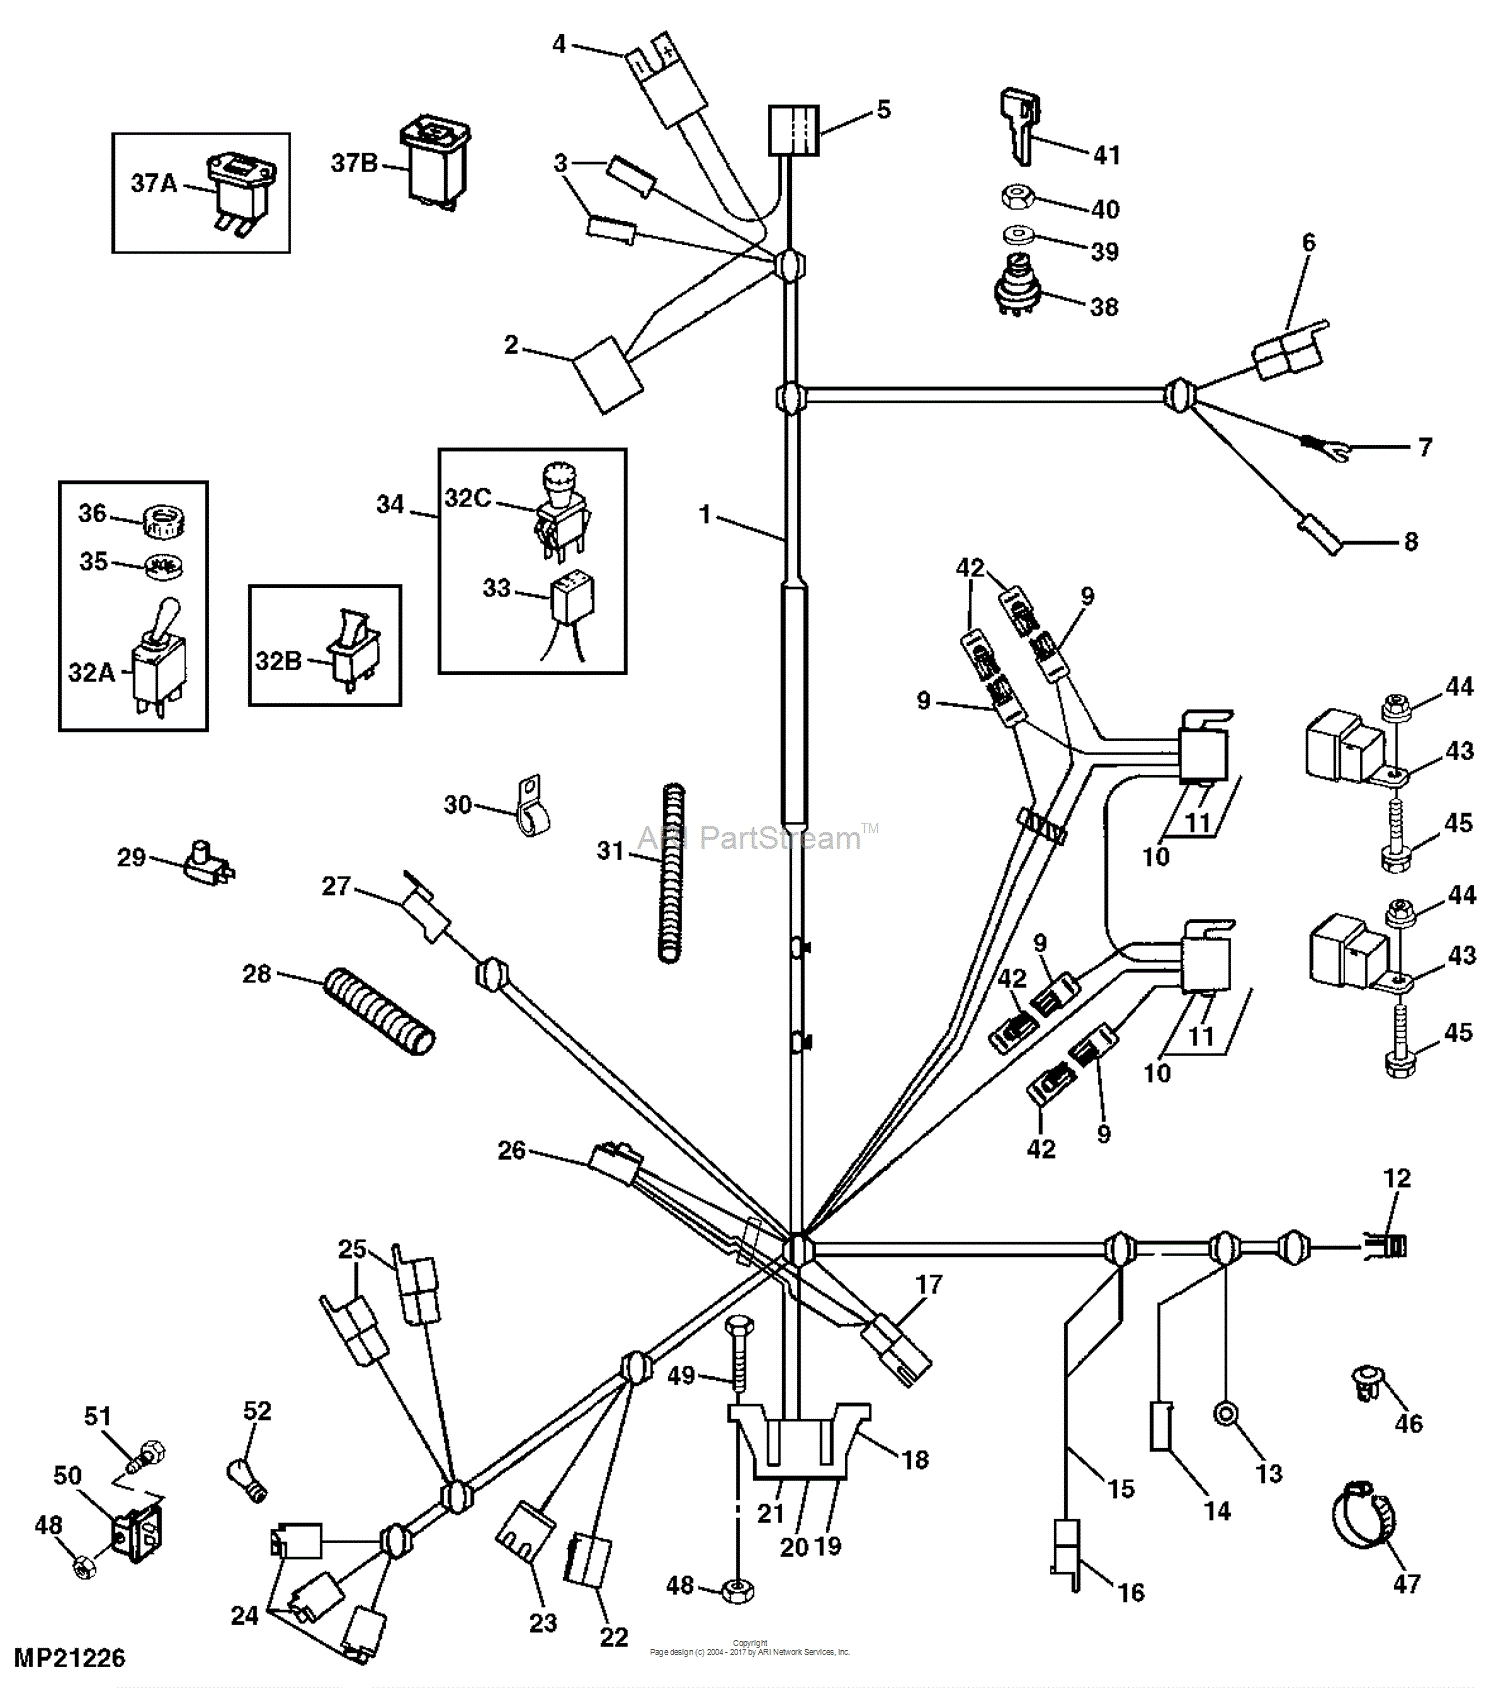 John Deere F525 Wiring Diagram - John Deere Parts Diagrams F525 Front Mower W Out 20f